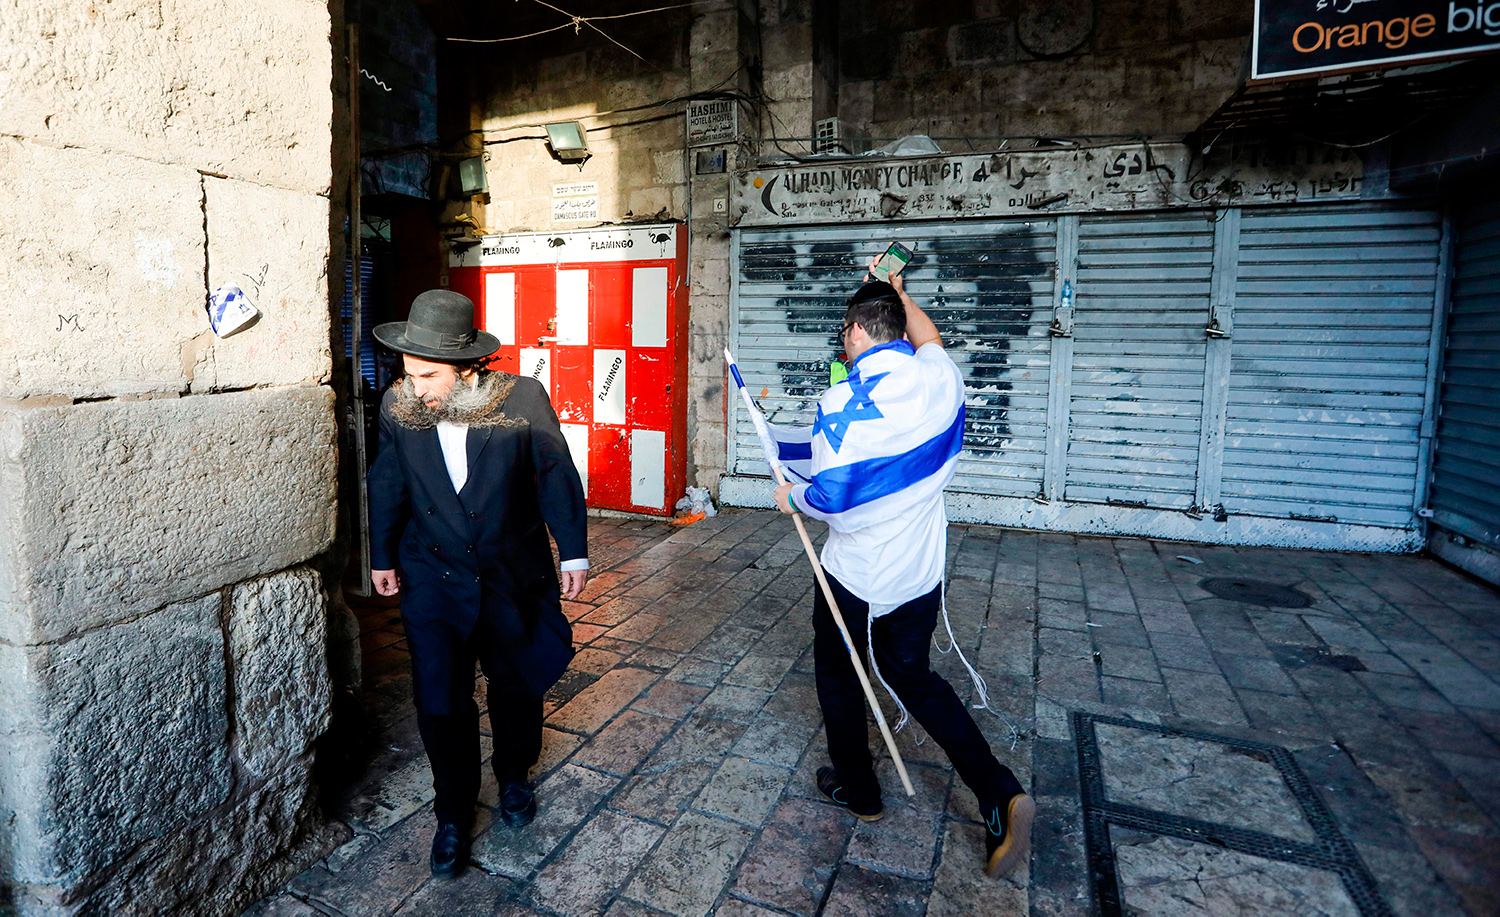 Two Jewish men in Jerusalem on May 13, 2018. MENAHEM KAHANA/AFP via Getty Images.